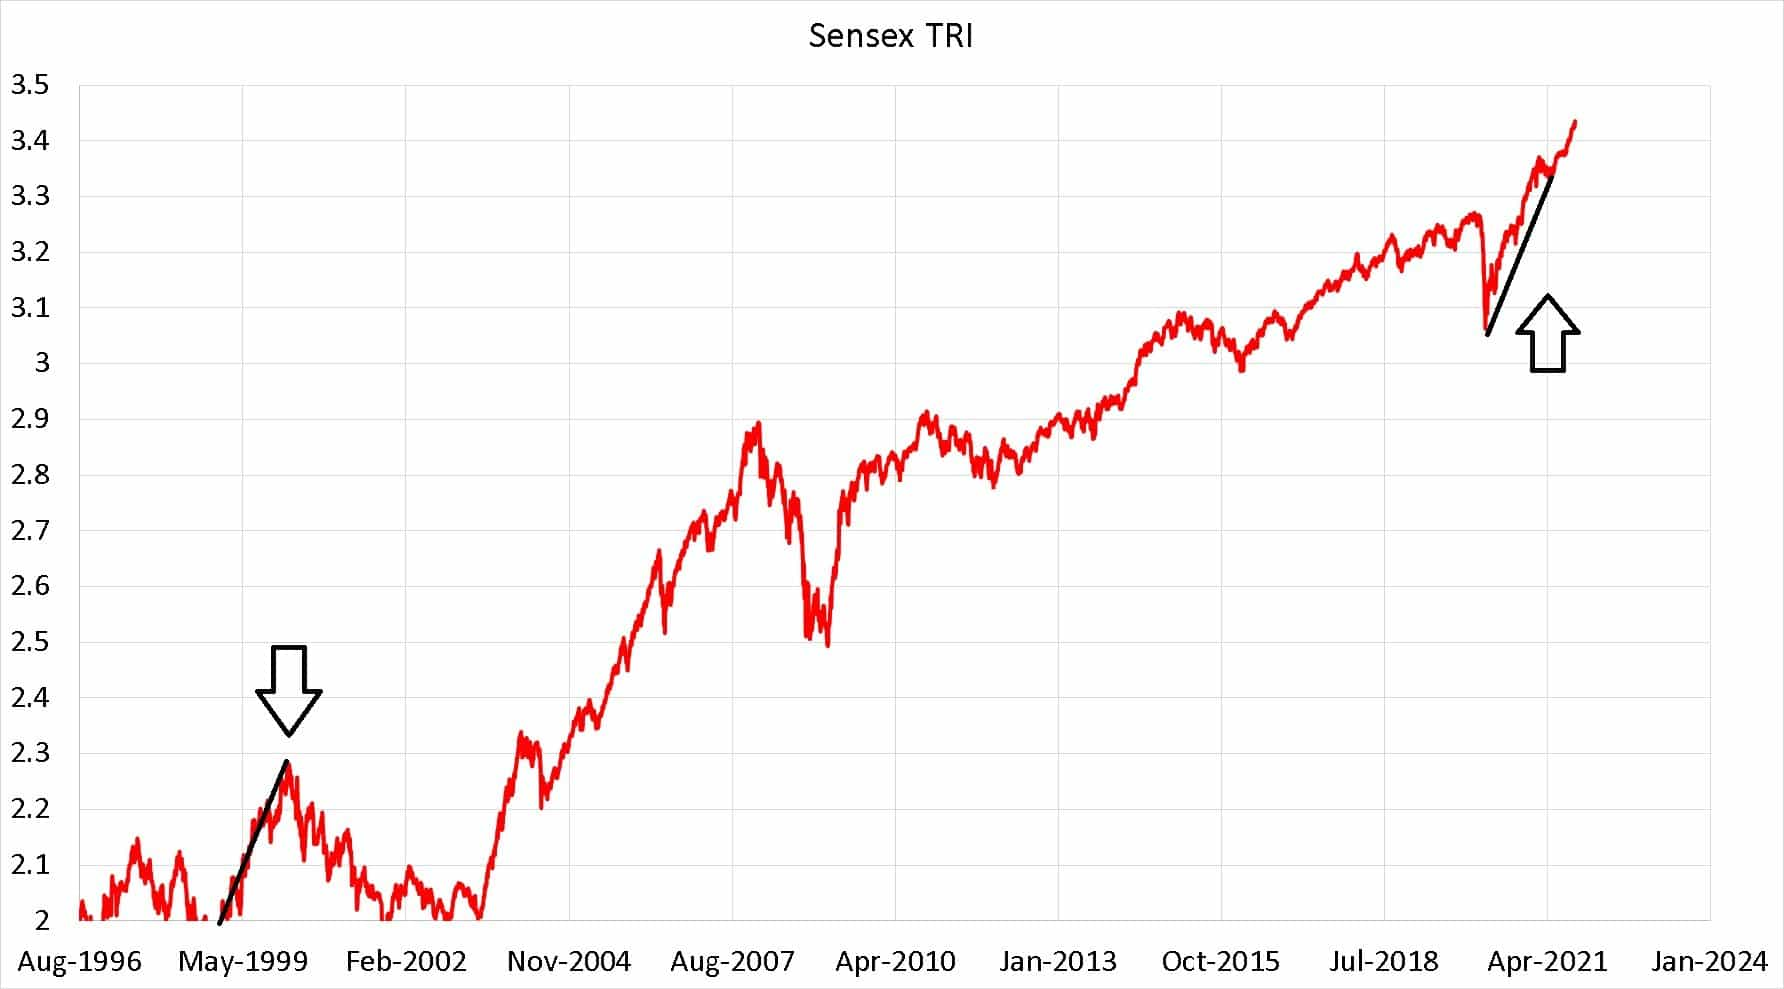 Sensex TRI shown in a log 10 scale. The dot com boom is marked a black line which has also been place over the bull run from March 2020.